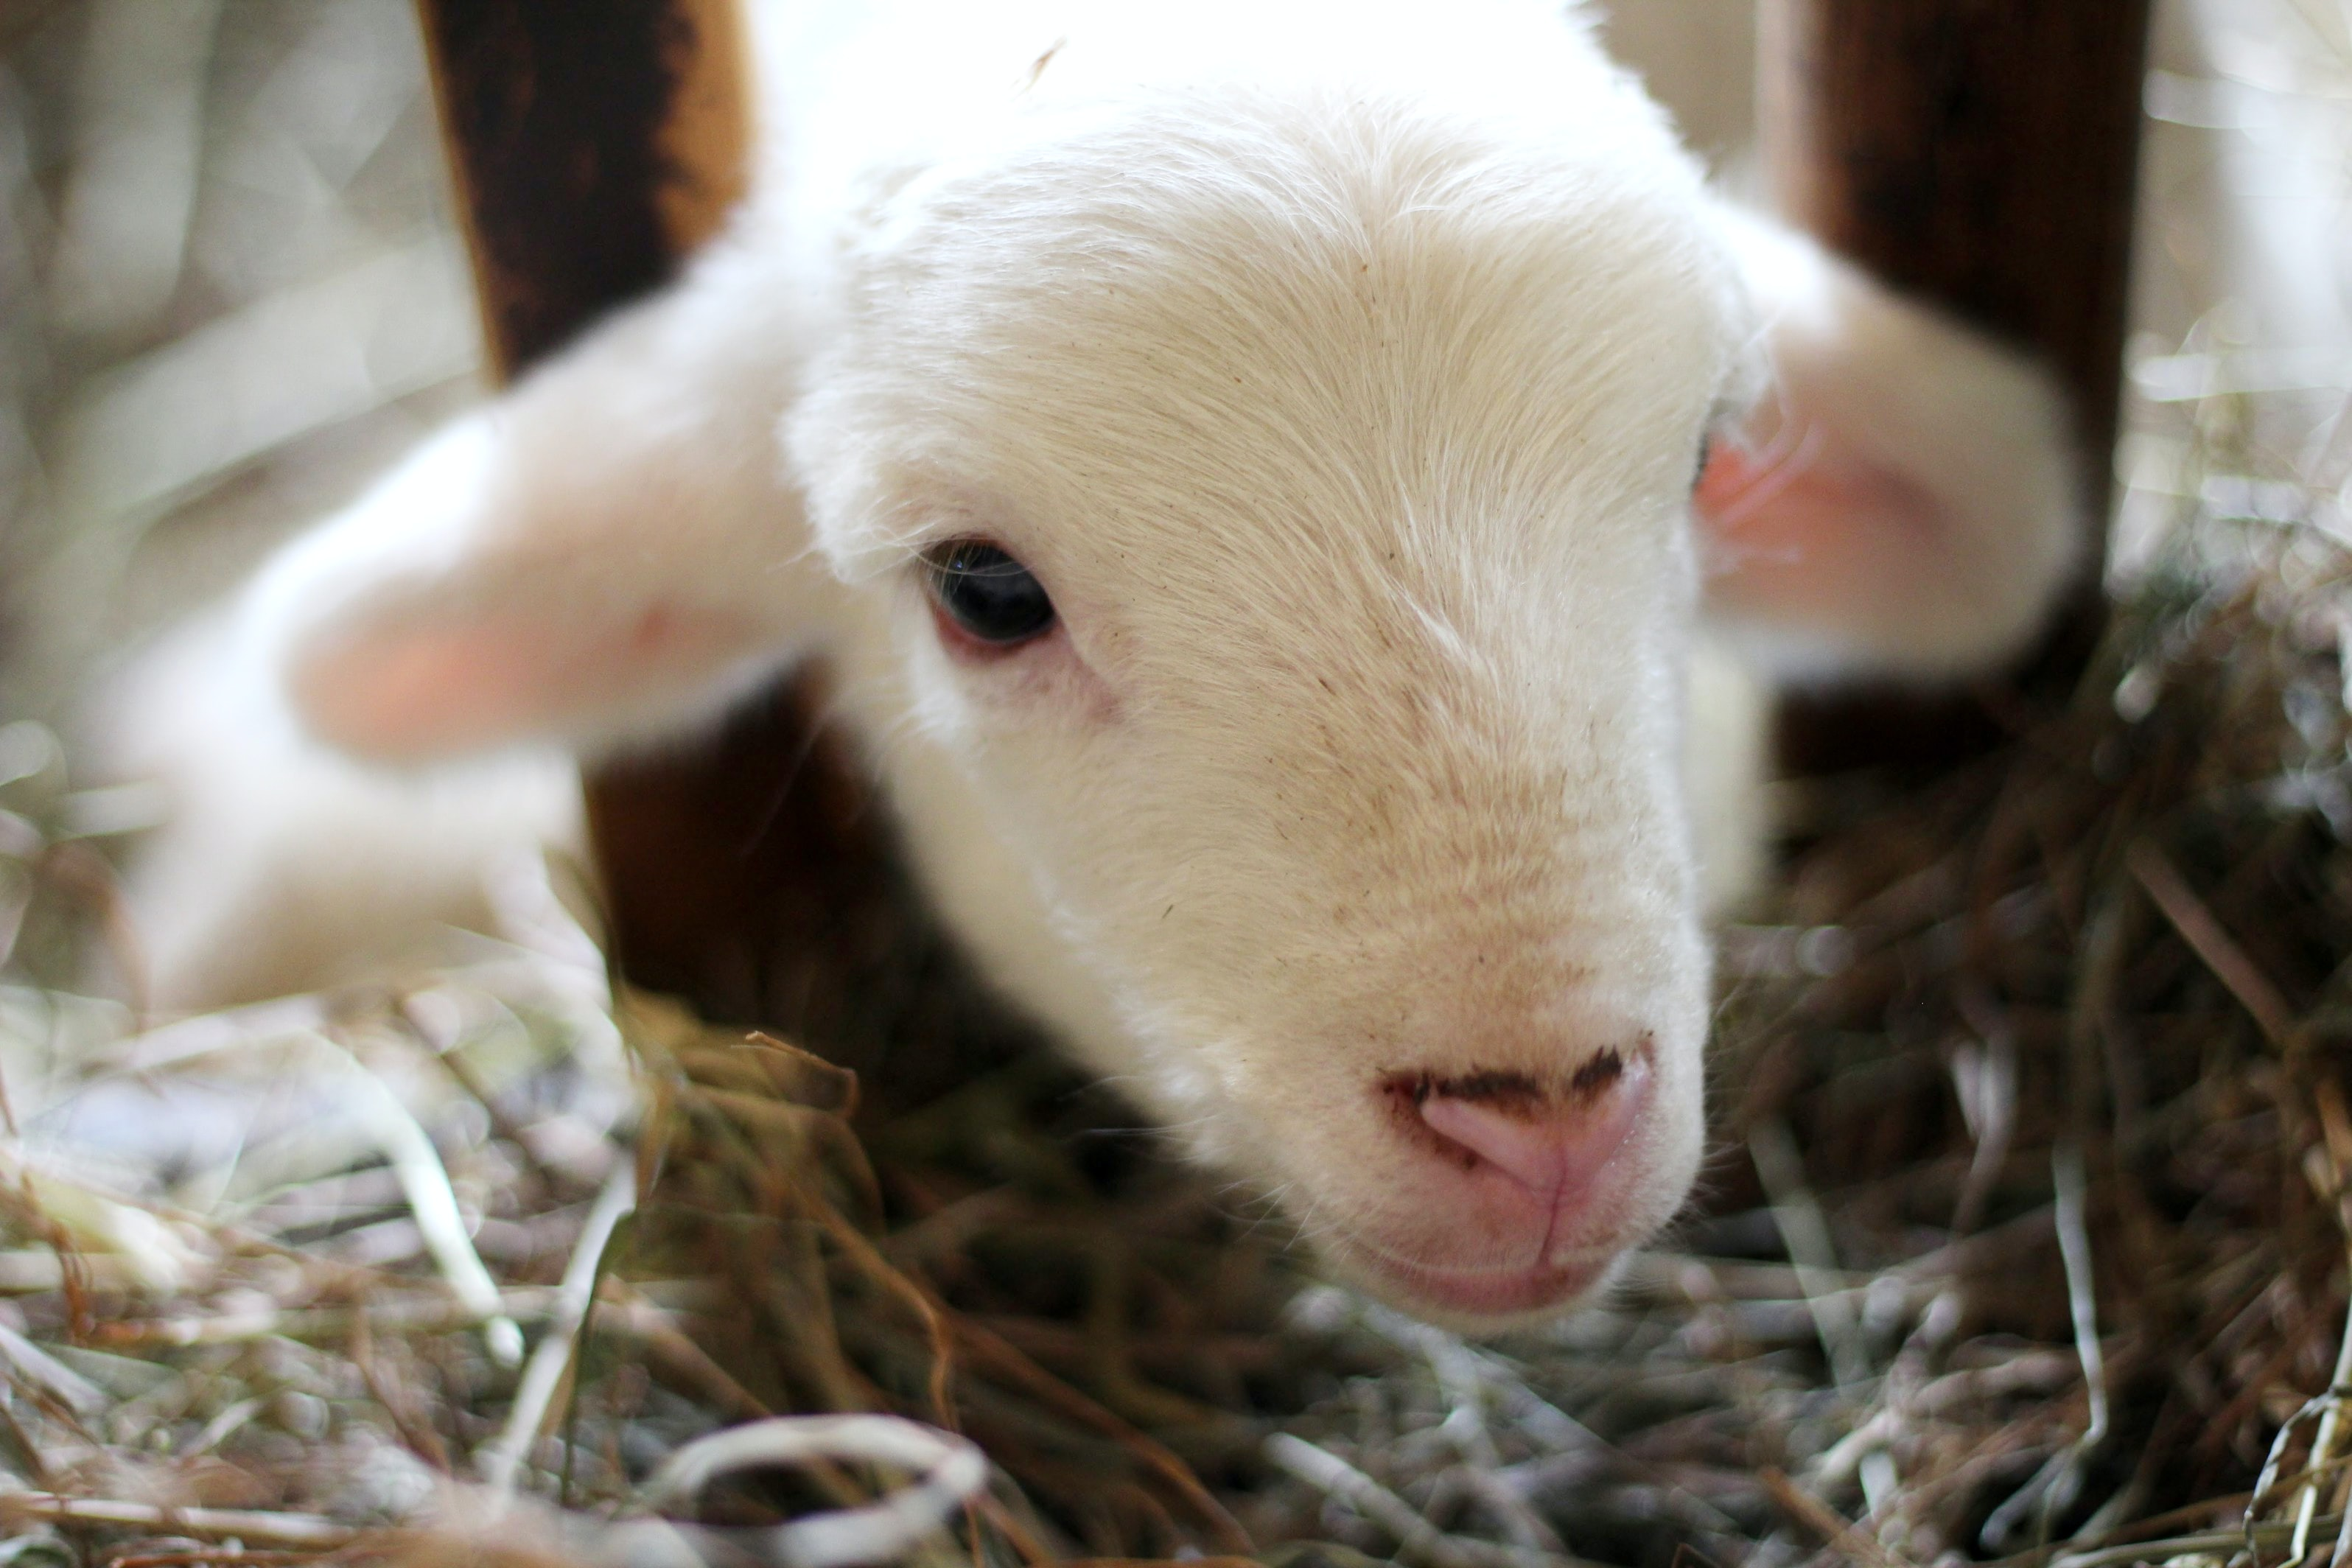 A baby lamb eating hay at Hancock Shaker Village